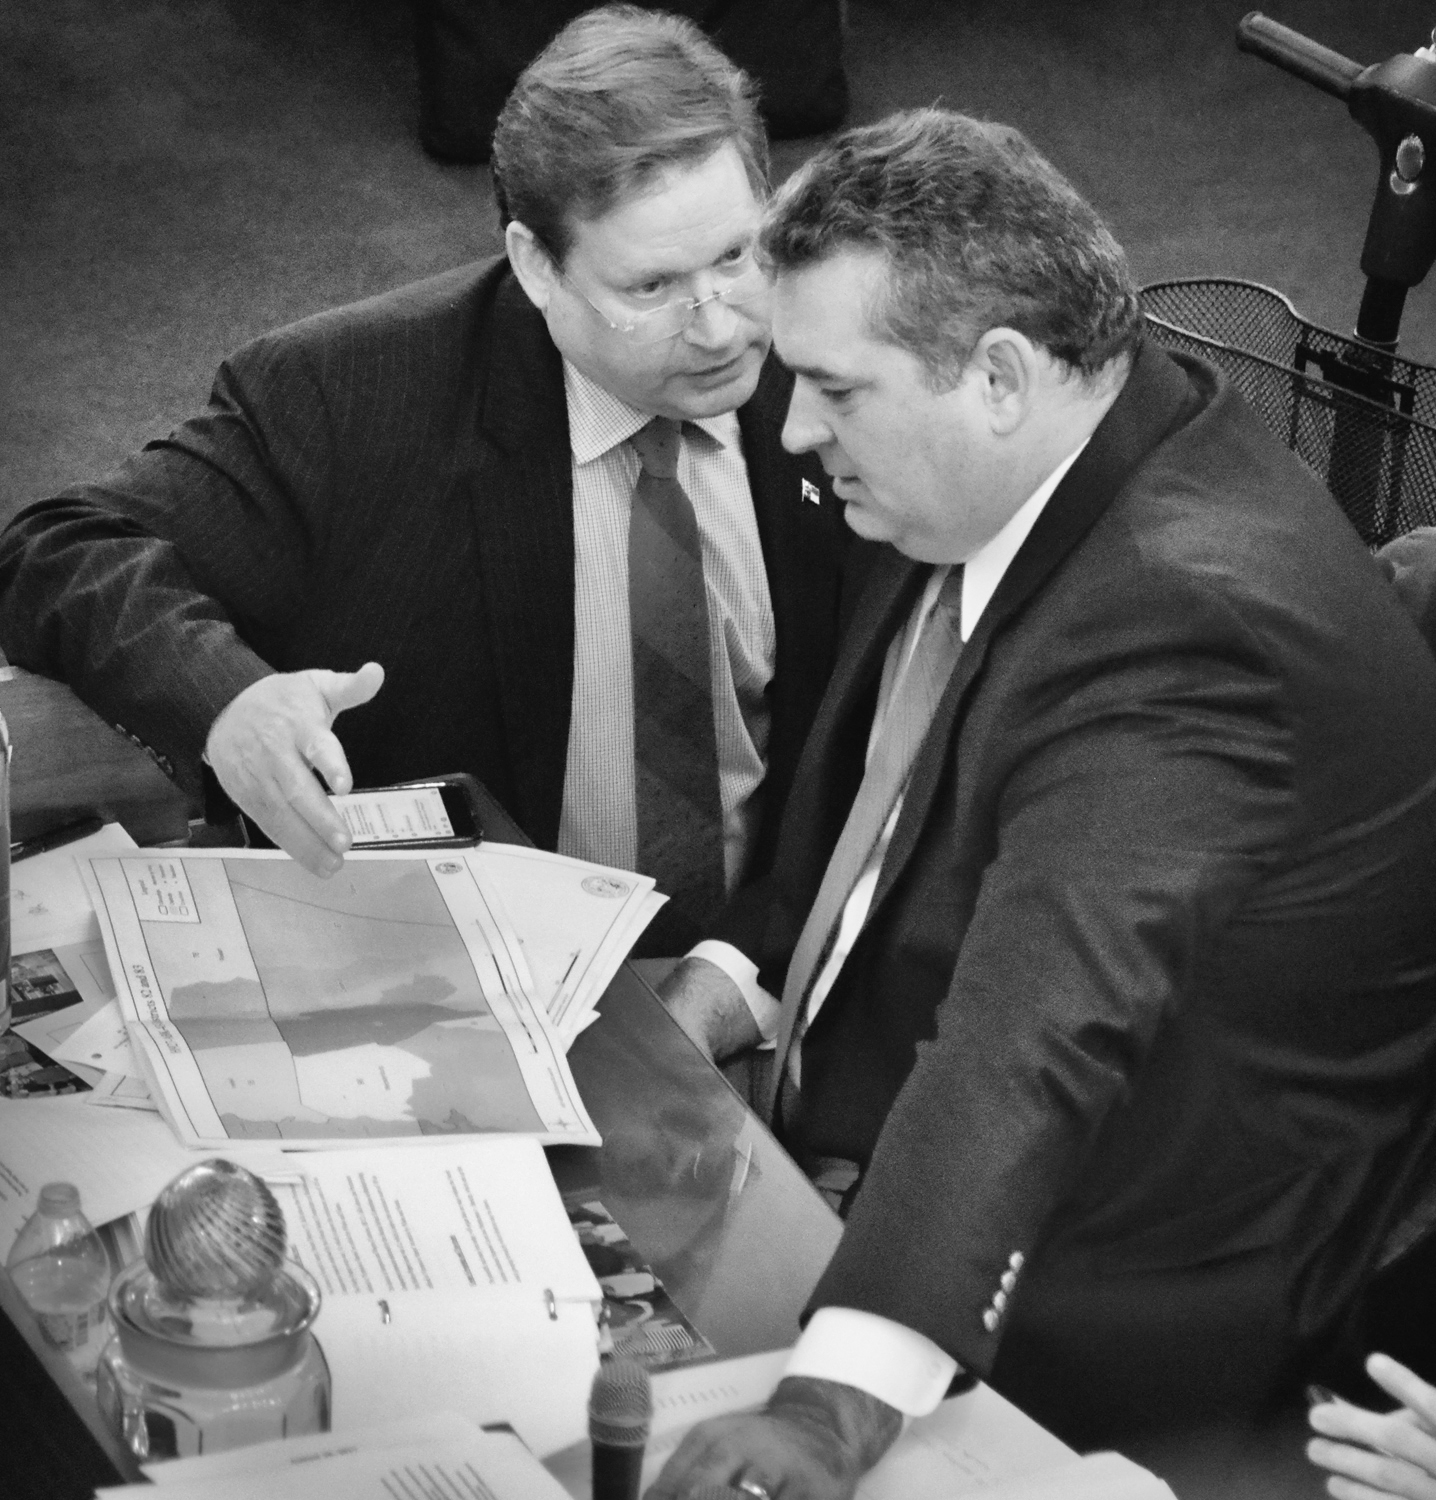 Rep. Nelson Dollar (left) and Rep. David Lewis confer on the floor of the House during debate prior to the vote.